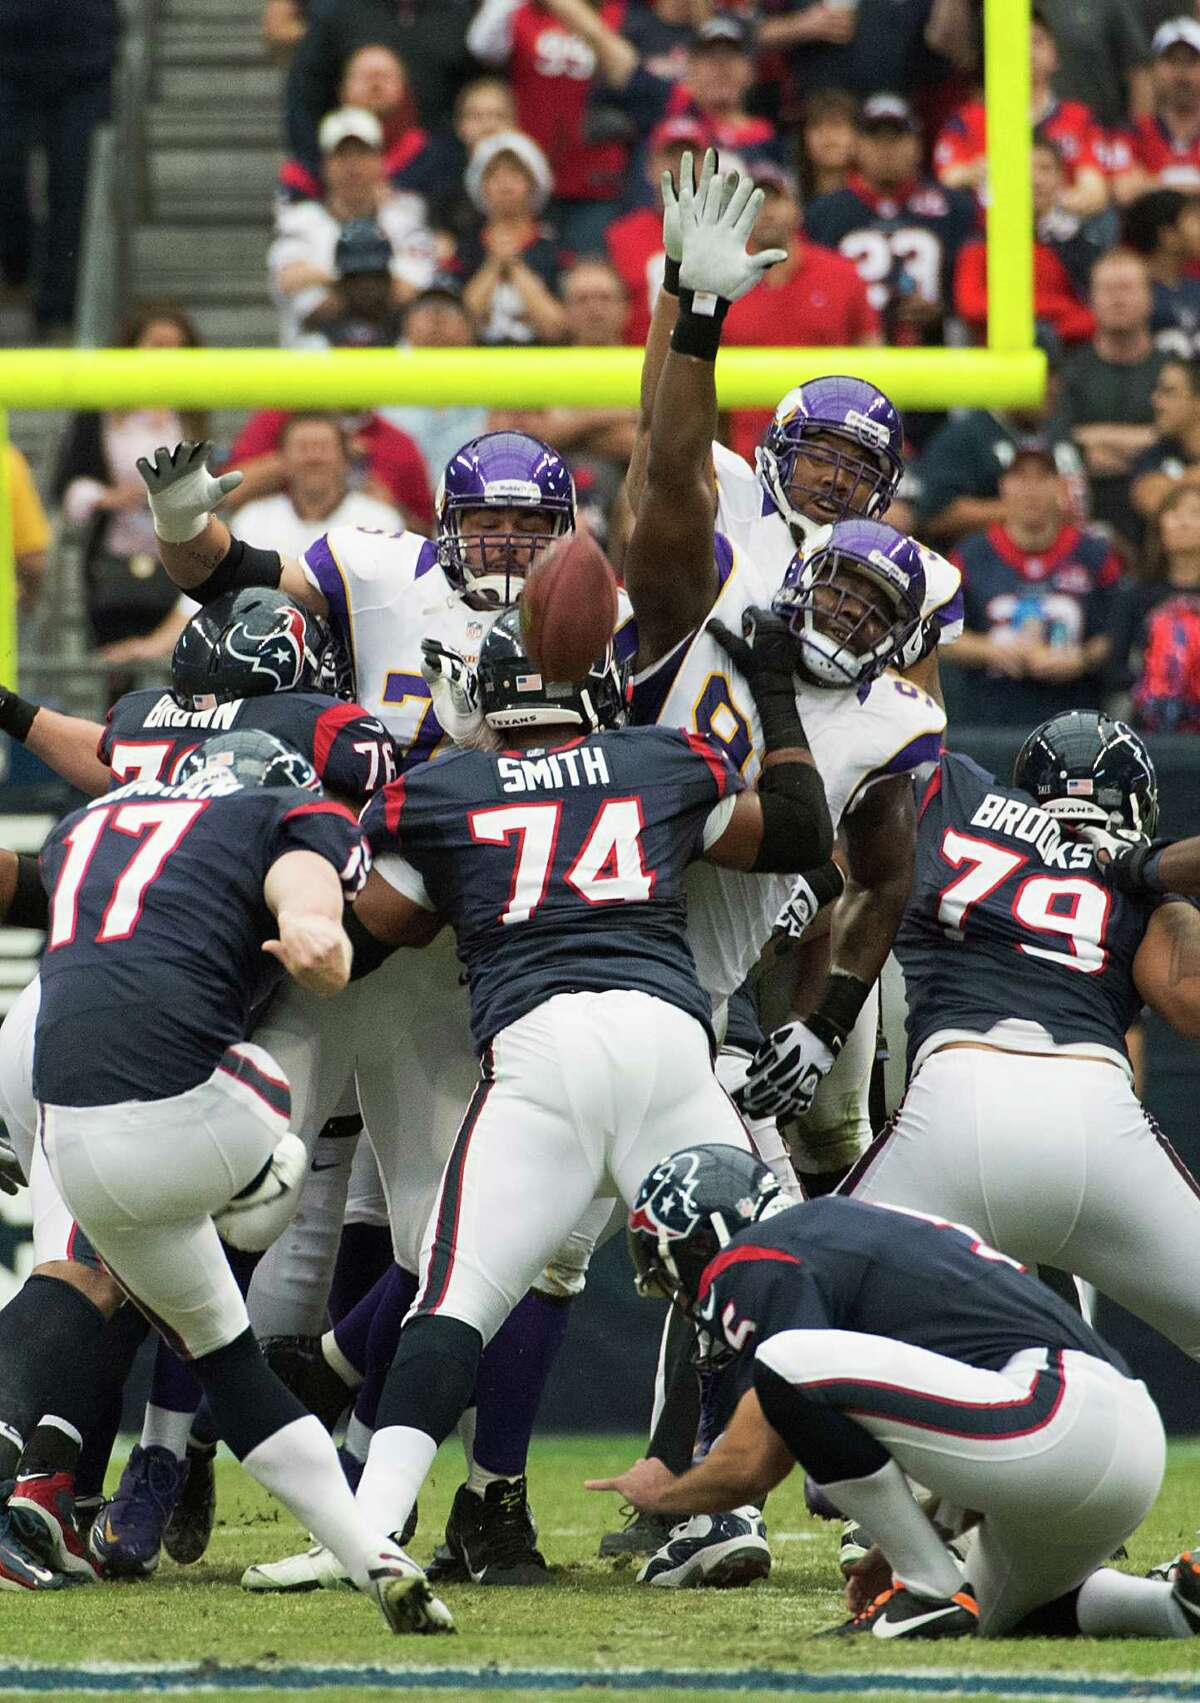 Houston Texans kicker Shayne Graham (17) connects on a 51-yard field goal during the first quarter against the Minnesota Vikings at Reliant Stadium on Sunday, Dec. 23, 2012, in Houston.